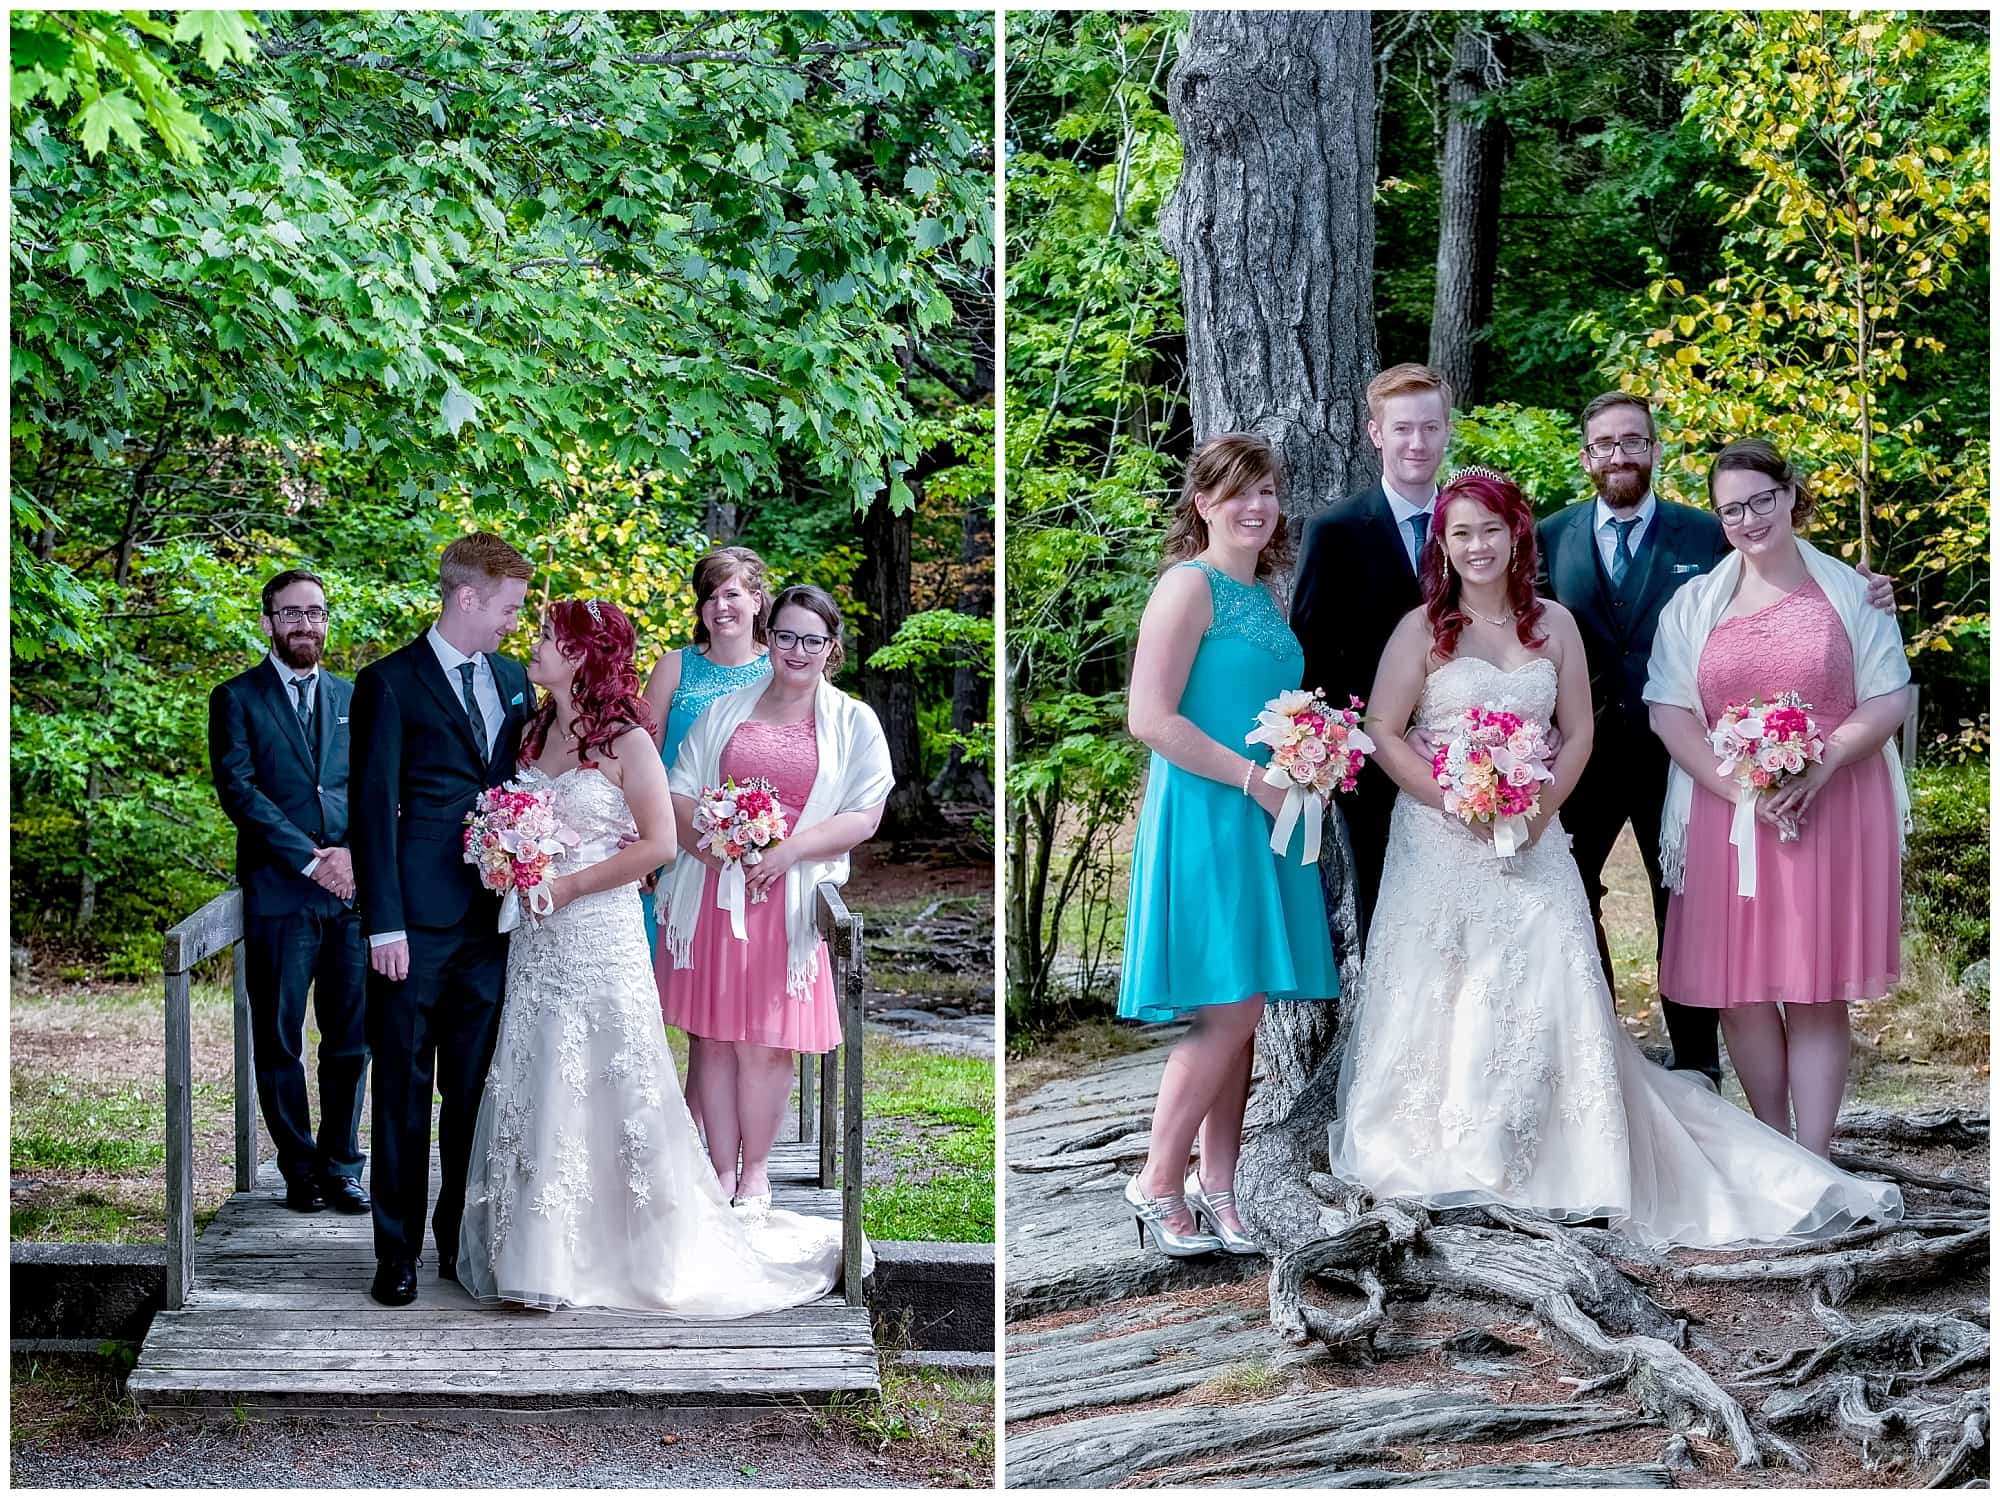 The wedding party photos with the bride and groom at Point Pleasant Park in Halifax, Nova Scotia.